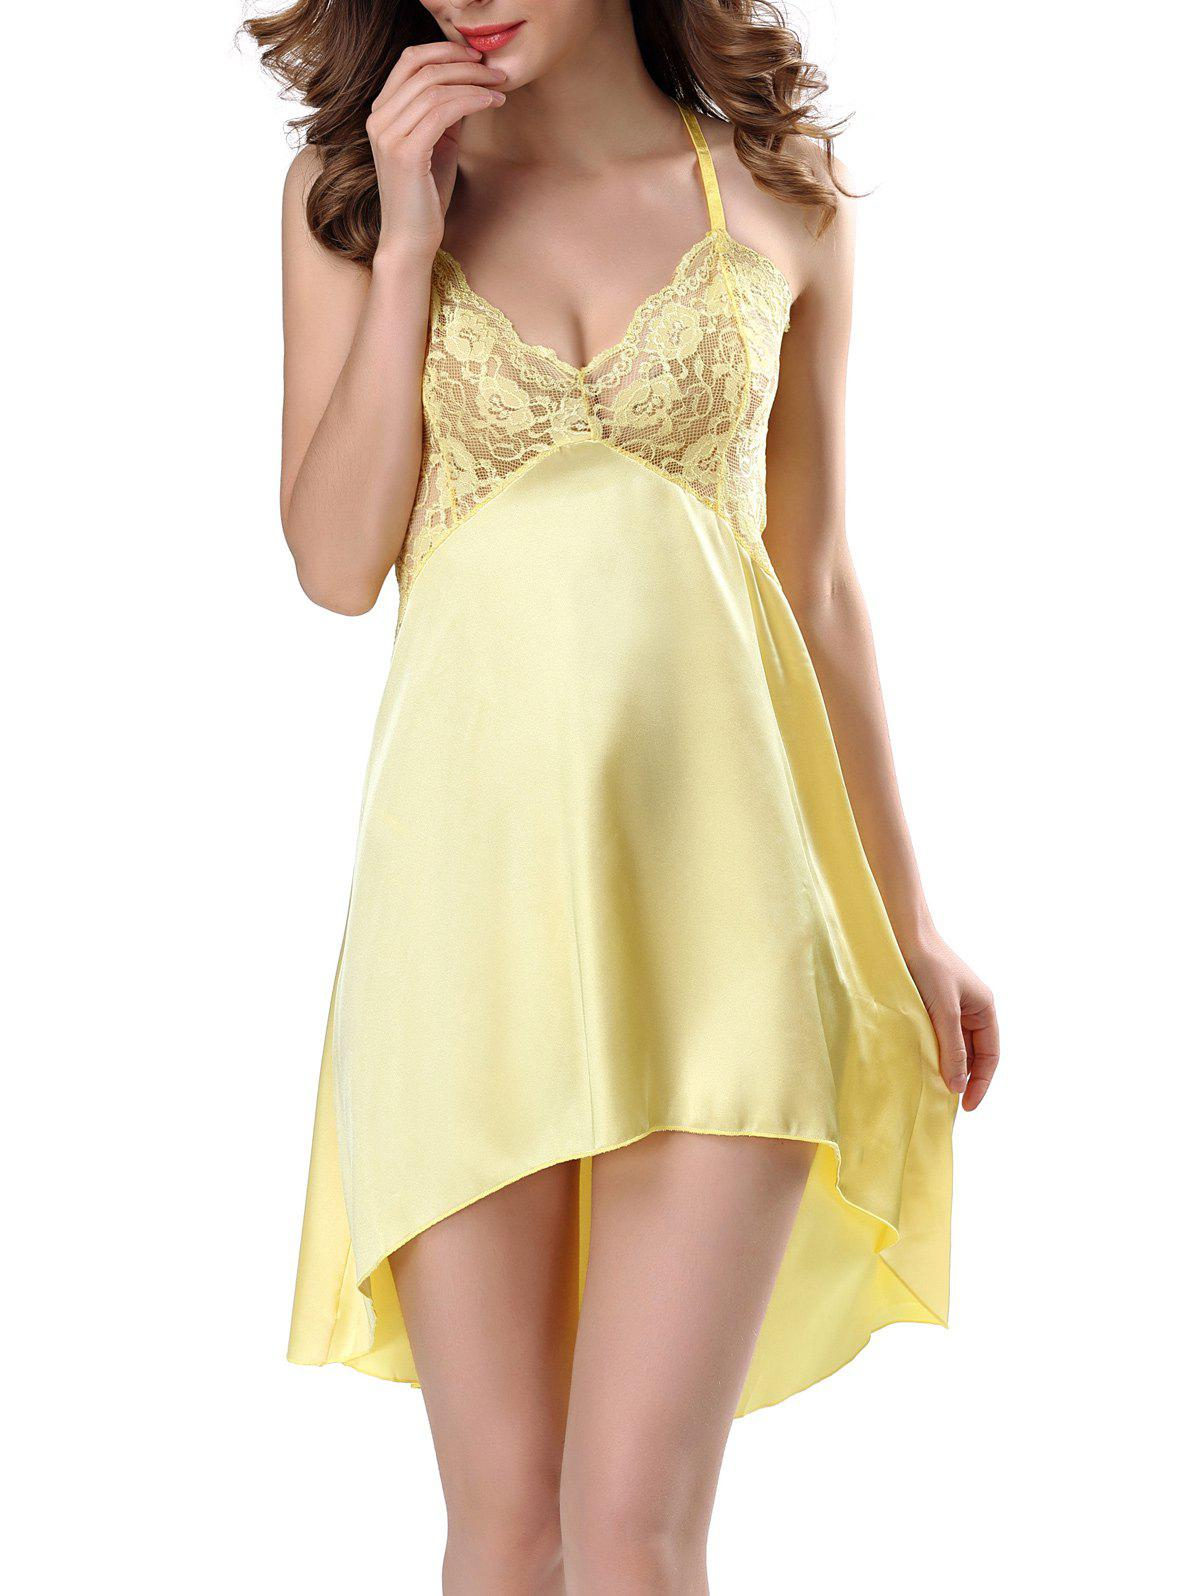 High Low Sleepwear Lace Insert Cami Babydolls - YELLOW XL